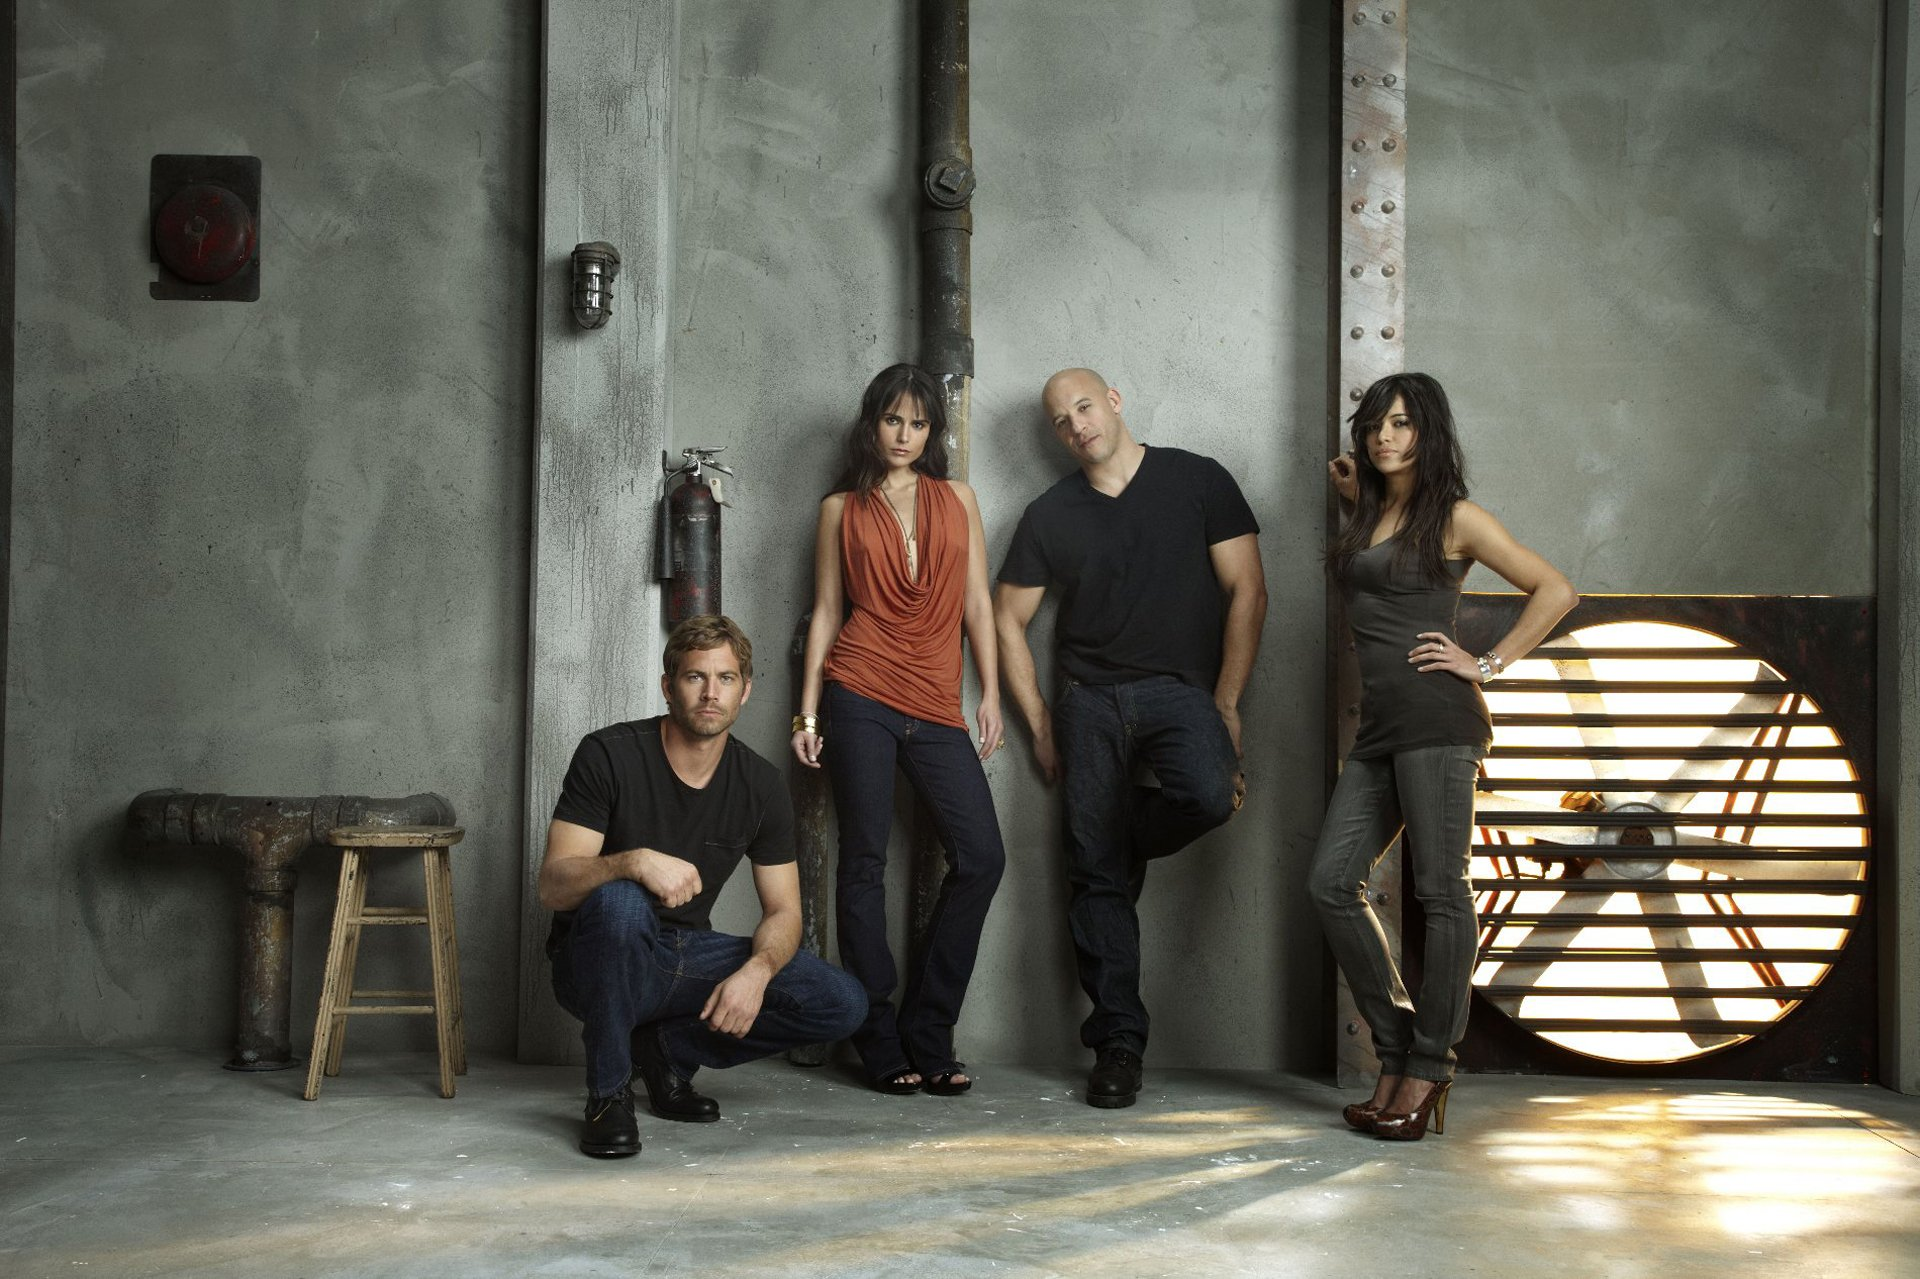 Movie - Fast & Furious  Vin Diesel Dominic Toretto Paul Walker Brian O'Conner Jordana Brewster Michelle Rodriguez Mia Toretto Letty Ortiz Wallpaper